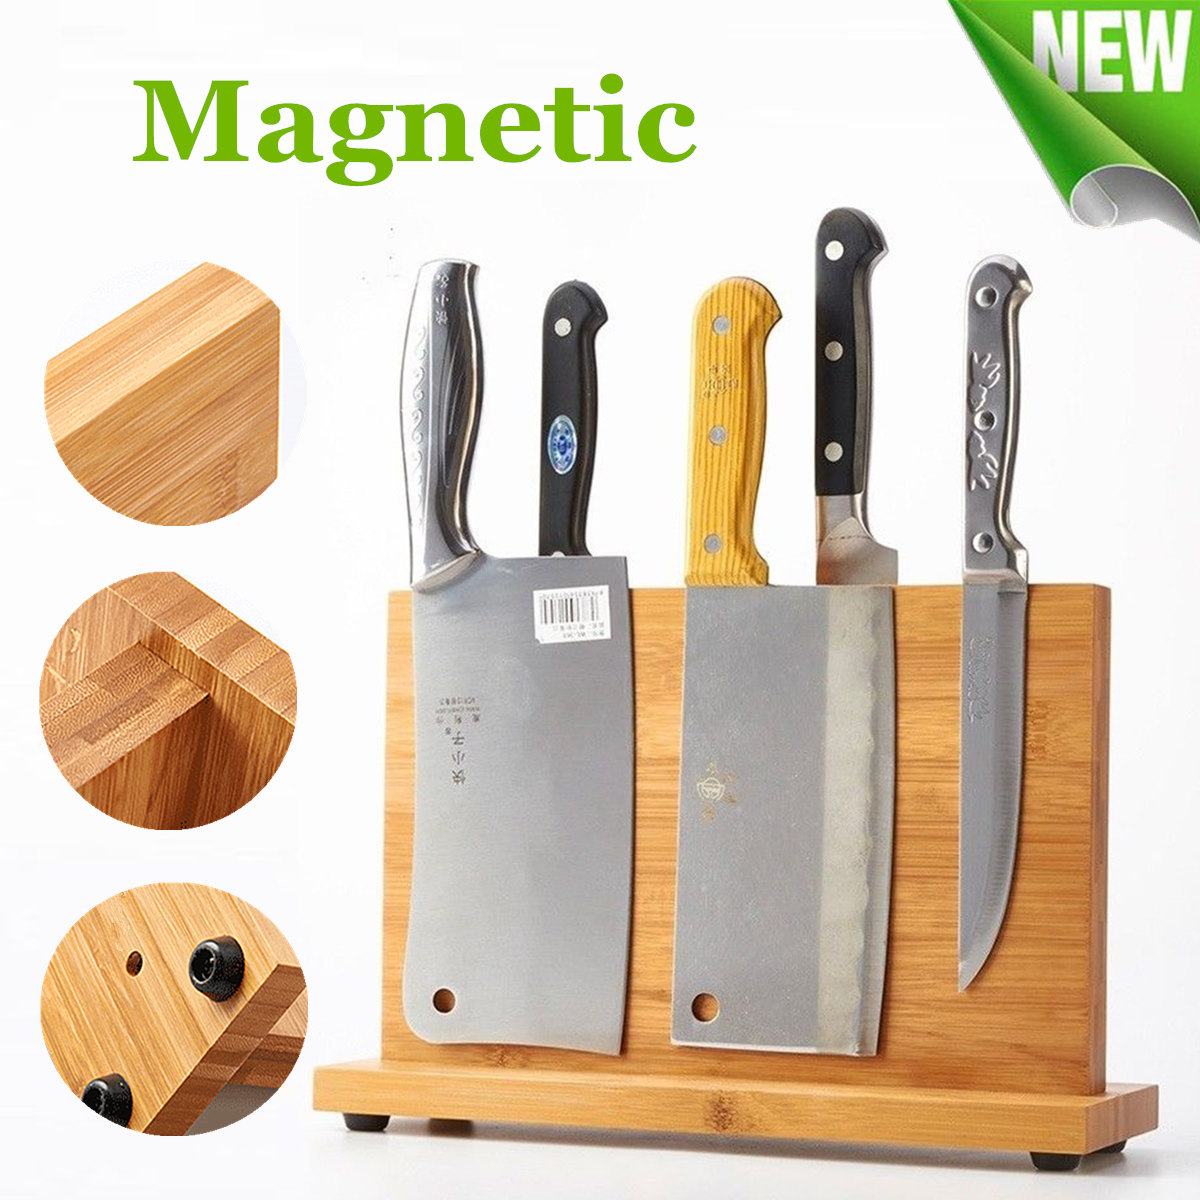 NEWEST Bamboo Magnetic Knife Holder Knife Rack Kitchen Bar Storage Block Knife Stand Organizer Tools Knife Accessories Gadgets